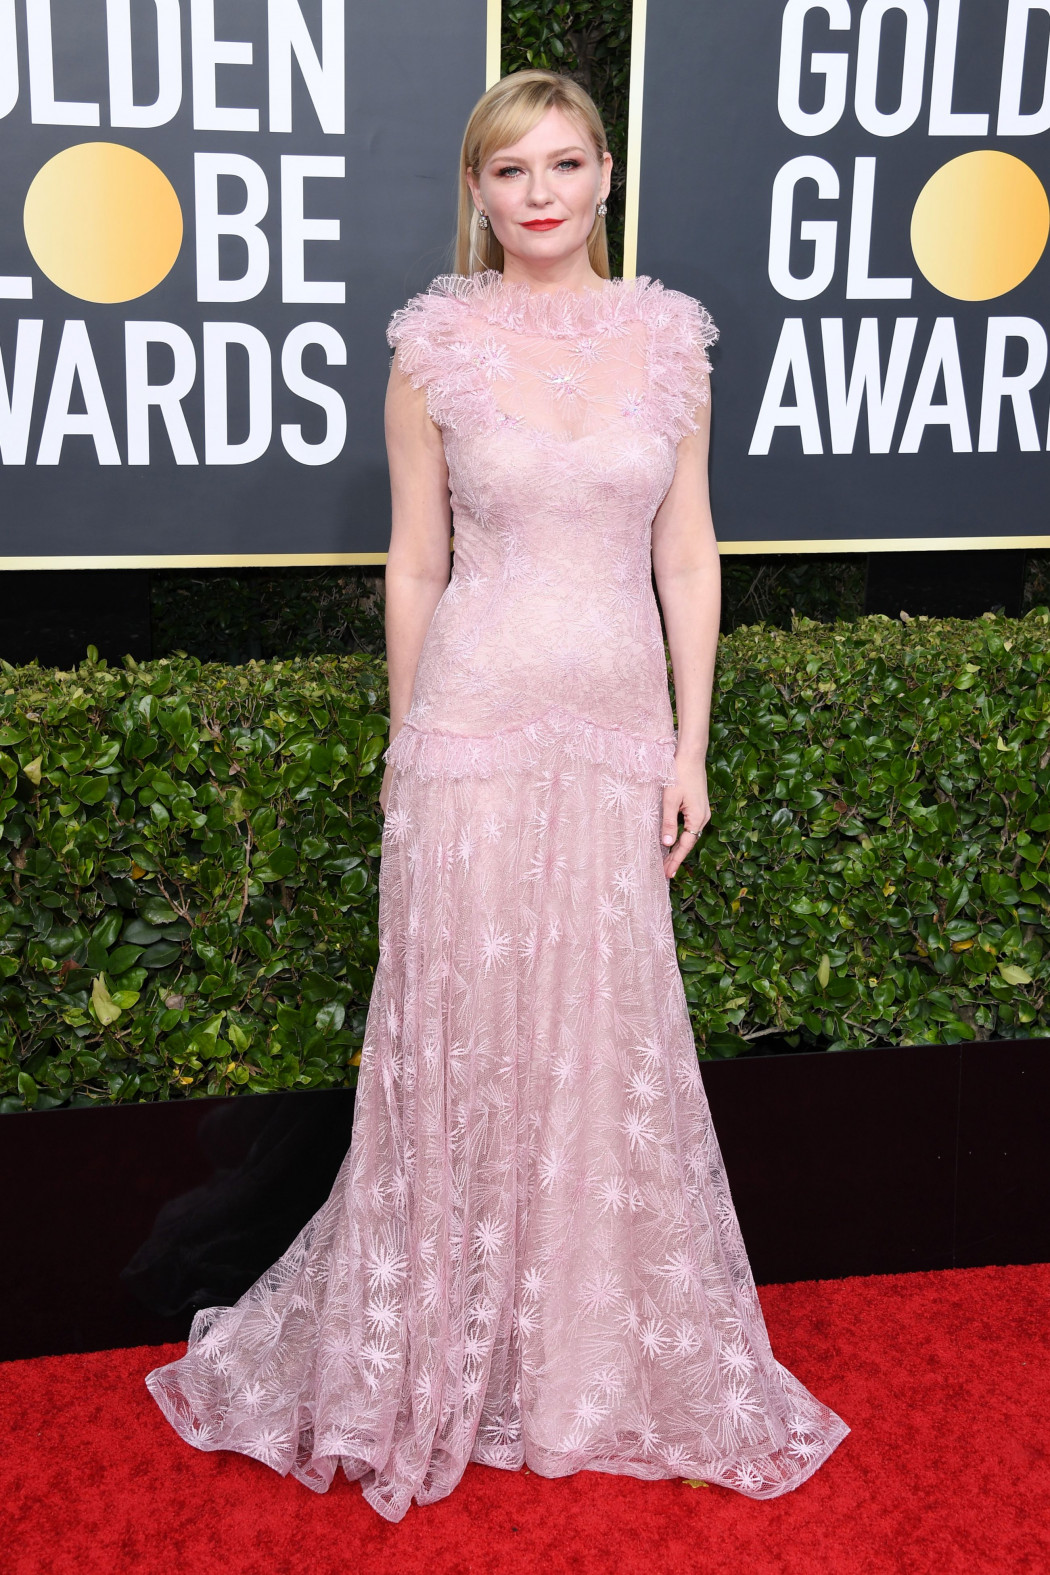 Golden Globes 2020 : les plus beaux looks du tapis rouge - 17